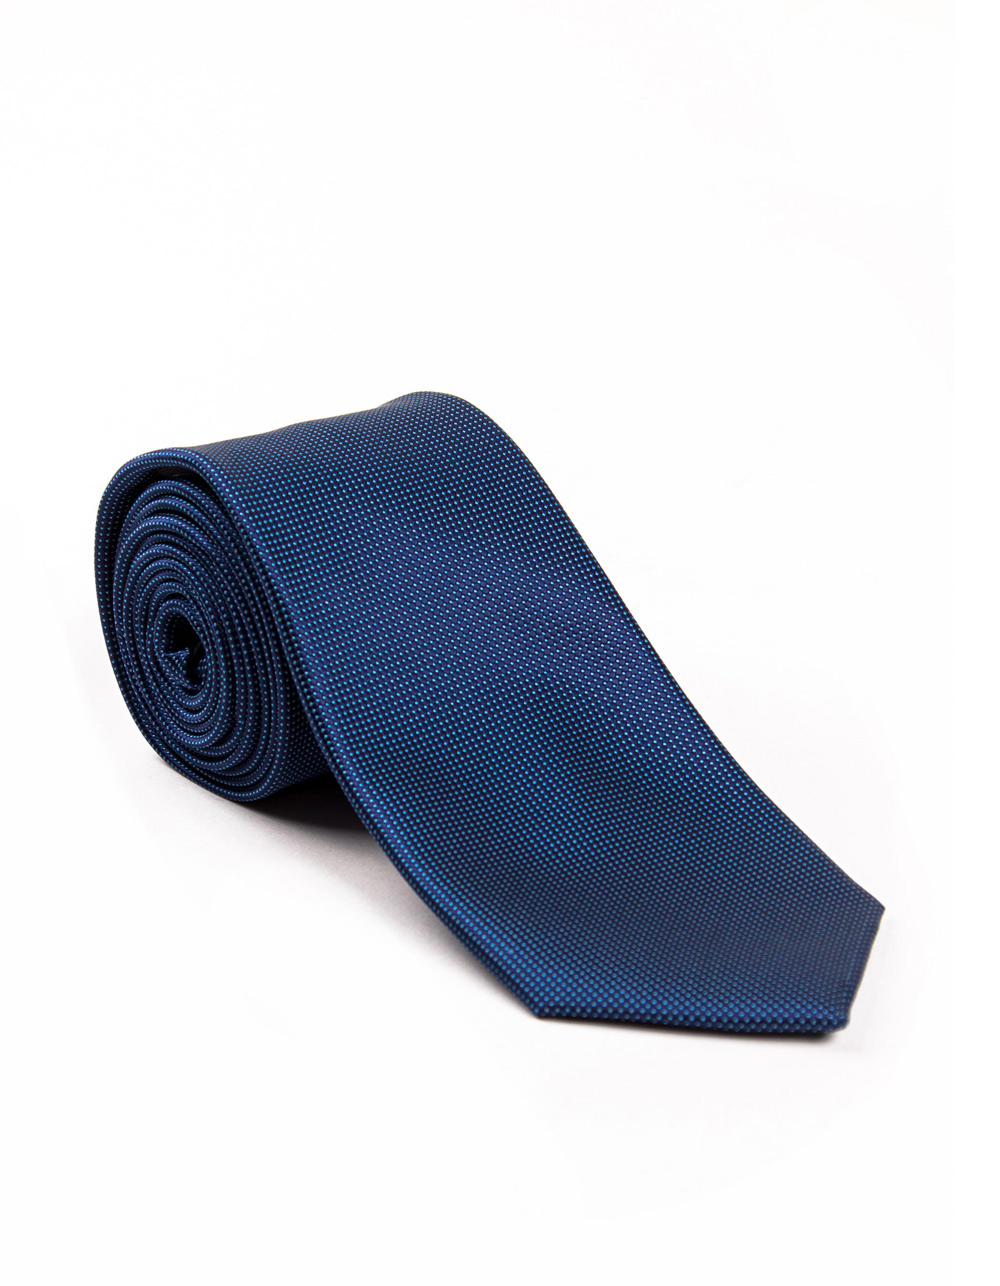 Blue tie with micro polka dots